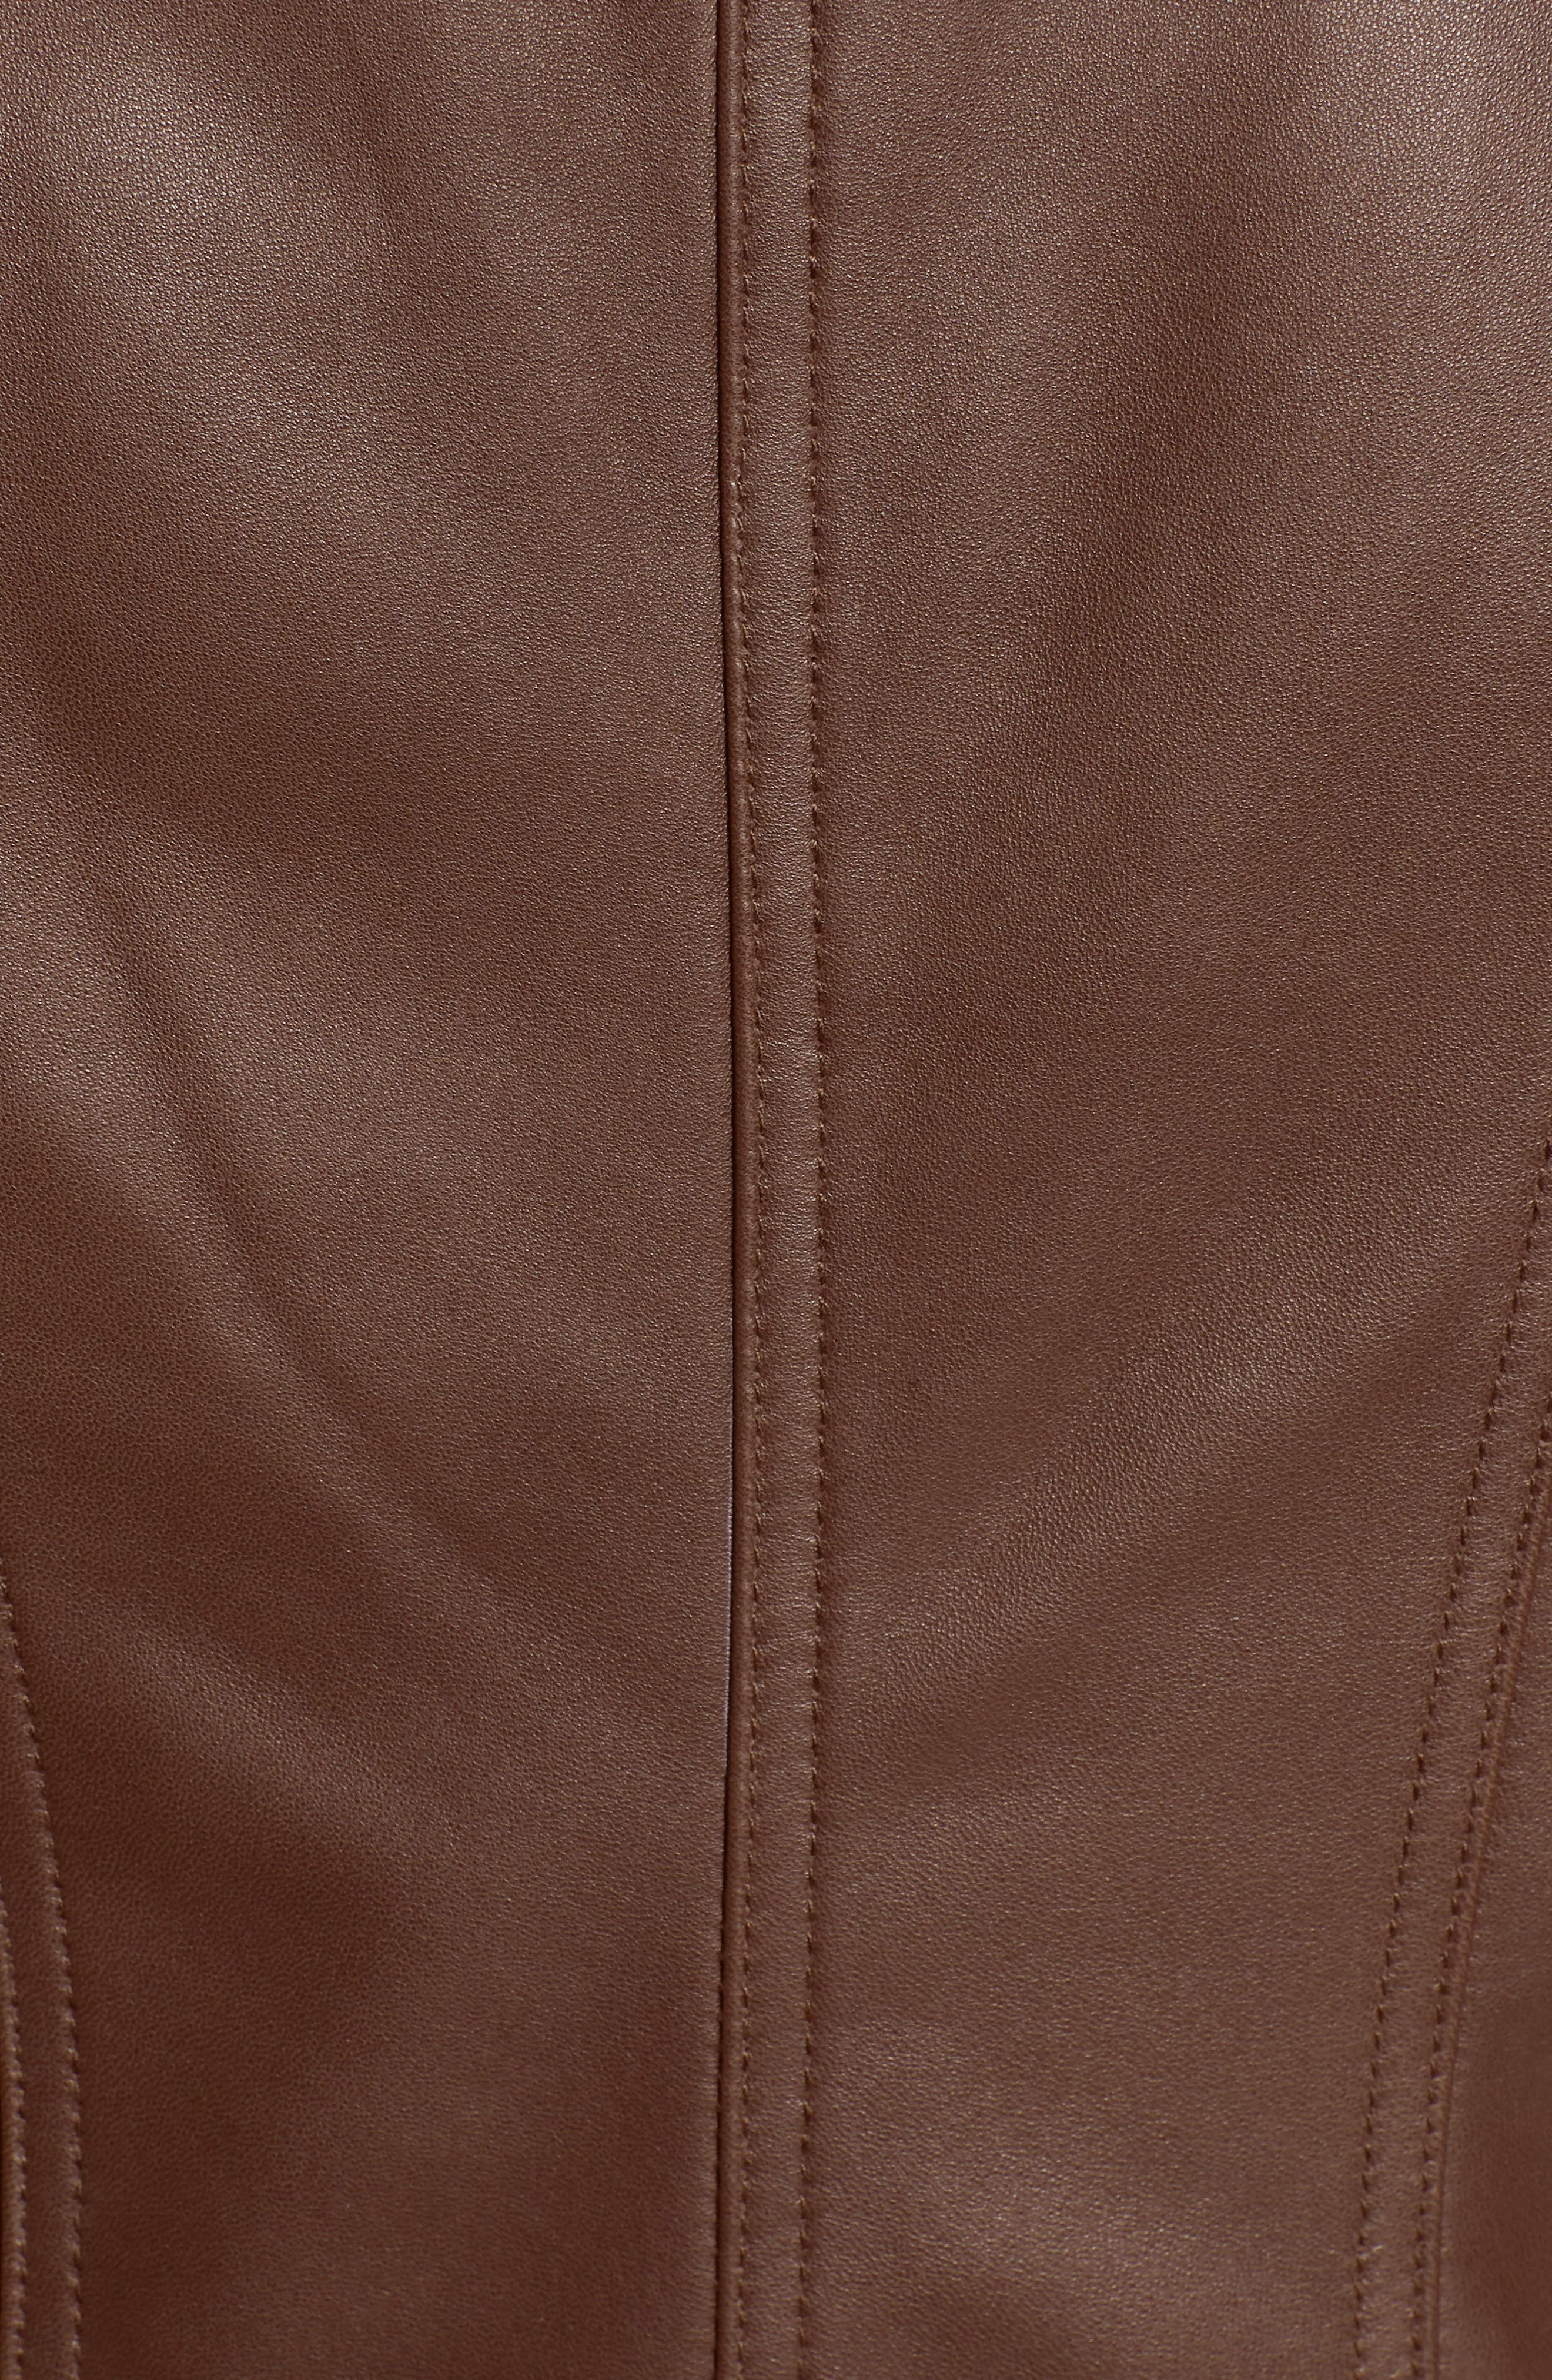 Gia Leather Biker Jacket,                             Alternate thumbnail 7, color,                             CHOCOLATE